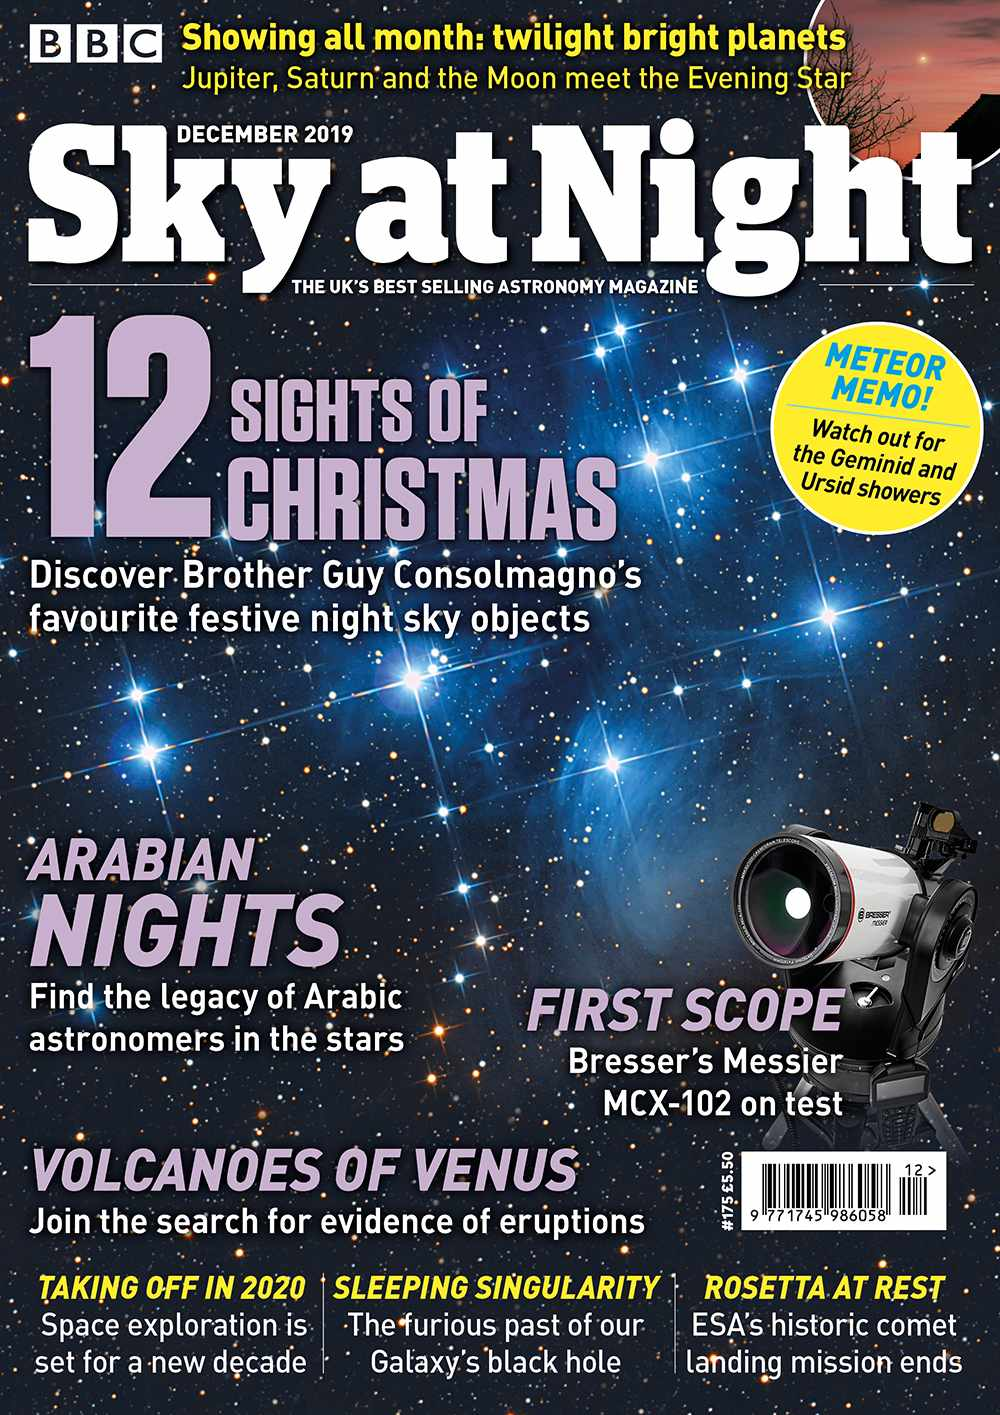 BBC Sky at Night Magazine December 2019 issue